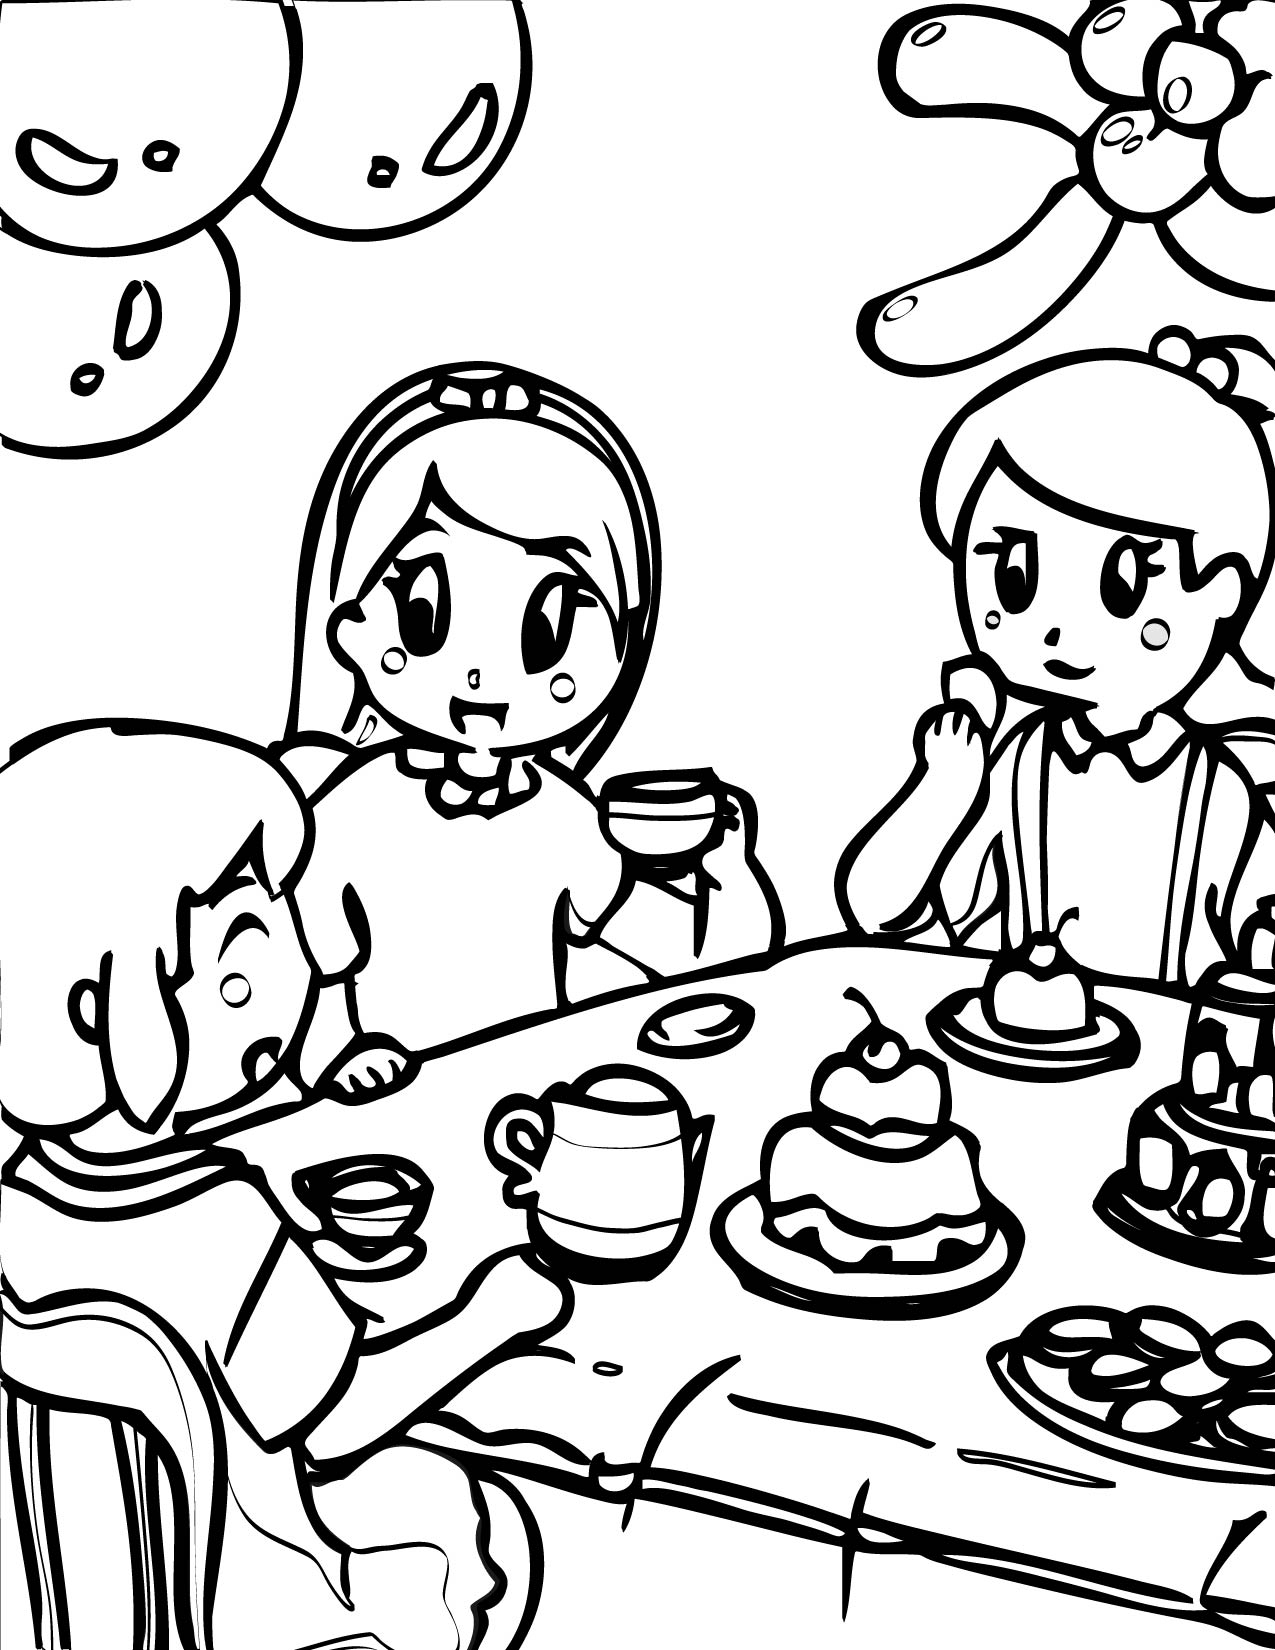 coloring pages party - photo#7